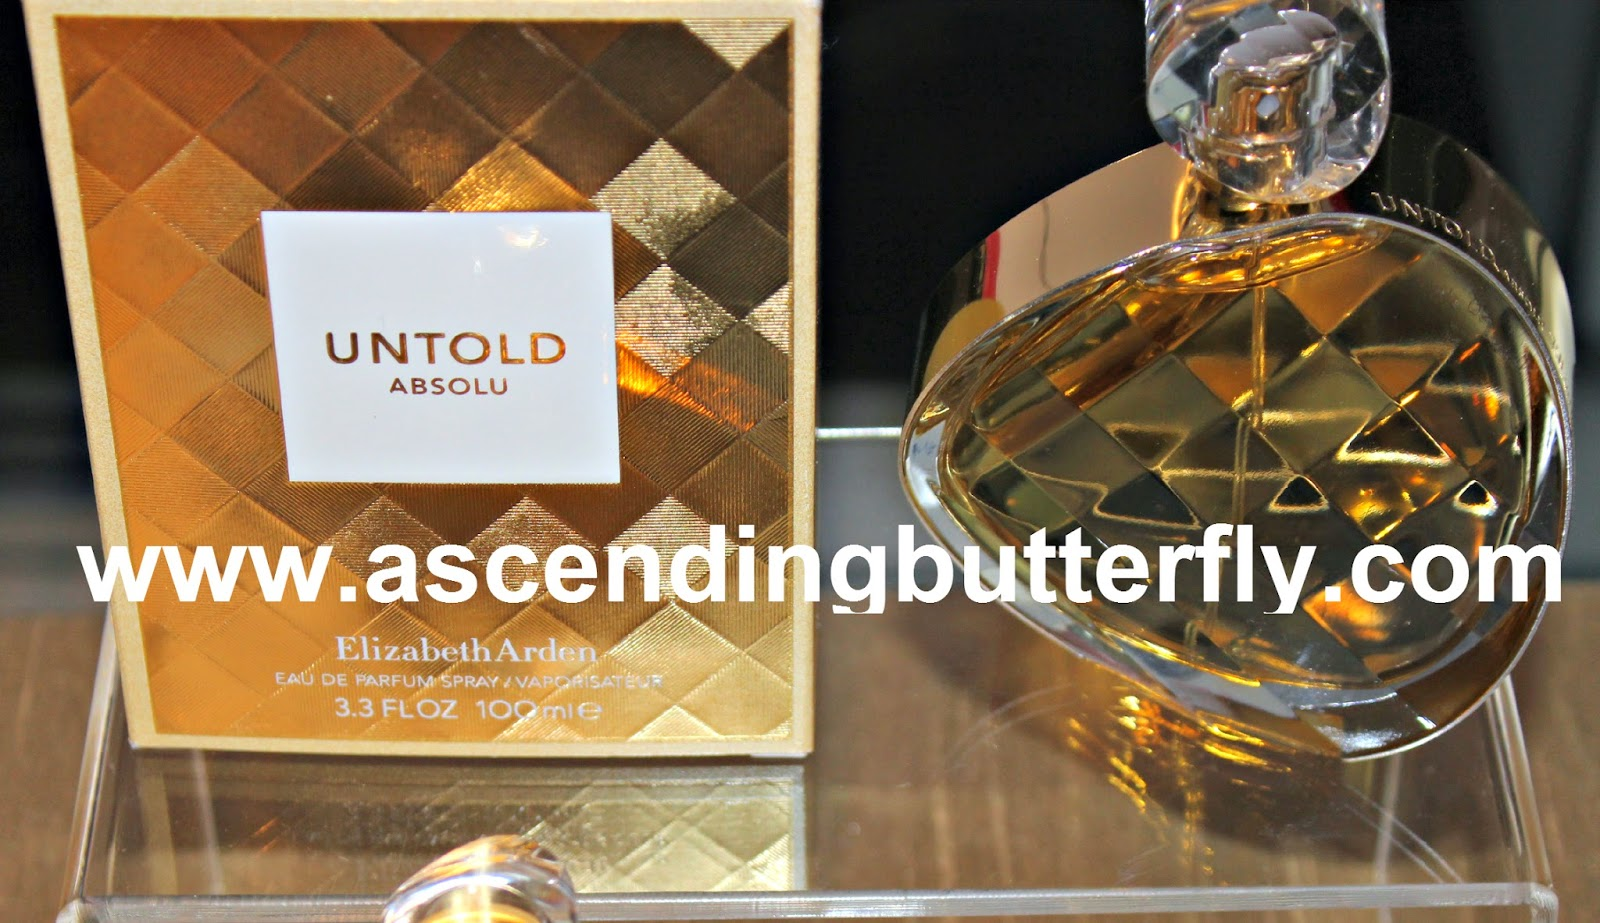 Celebrate the Season Elizabeth Arden Untold Absolu Perfume #CelebrateInStyle, Fragrances, Scents